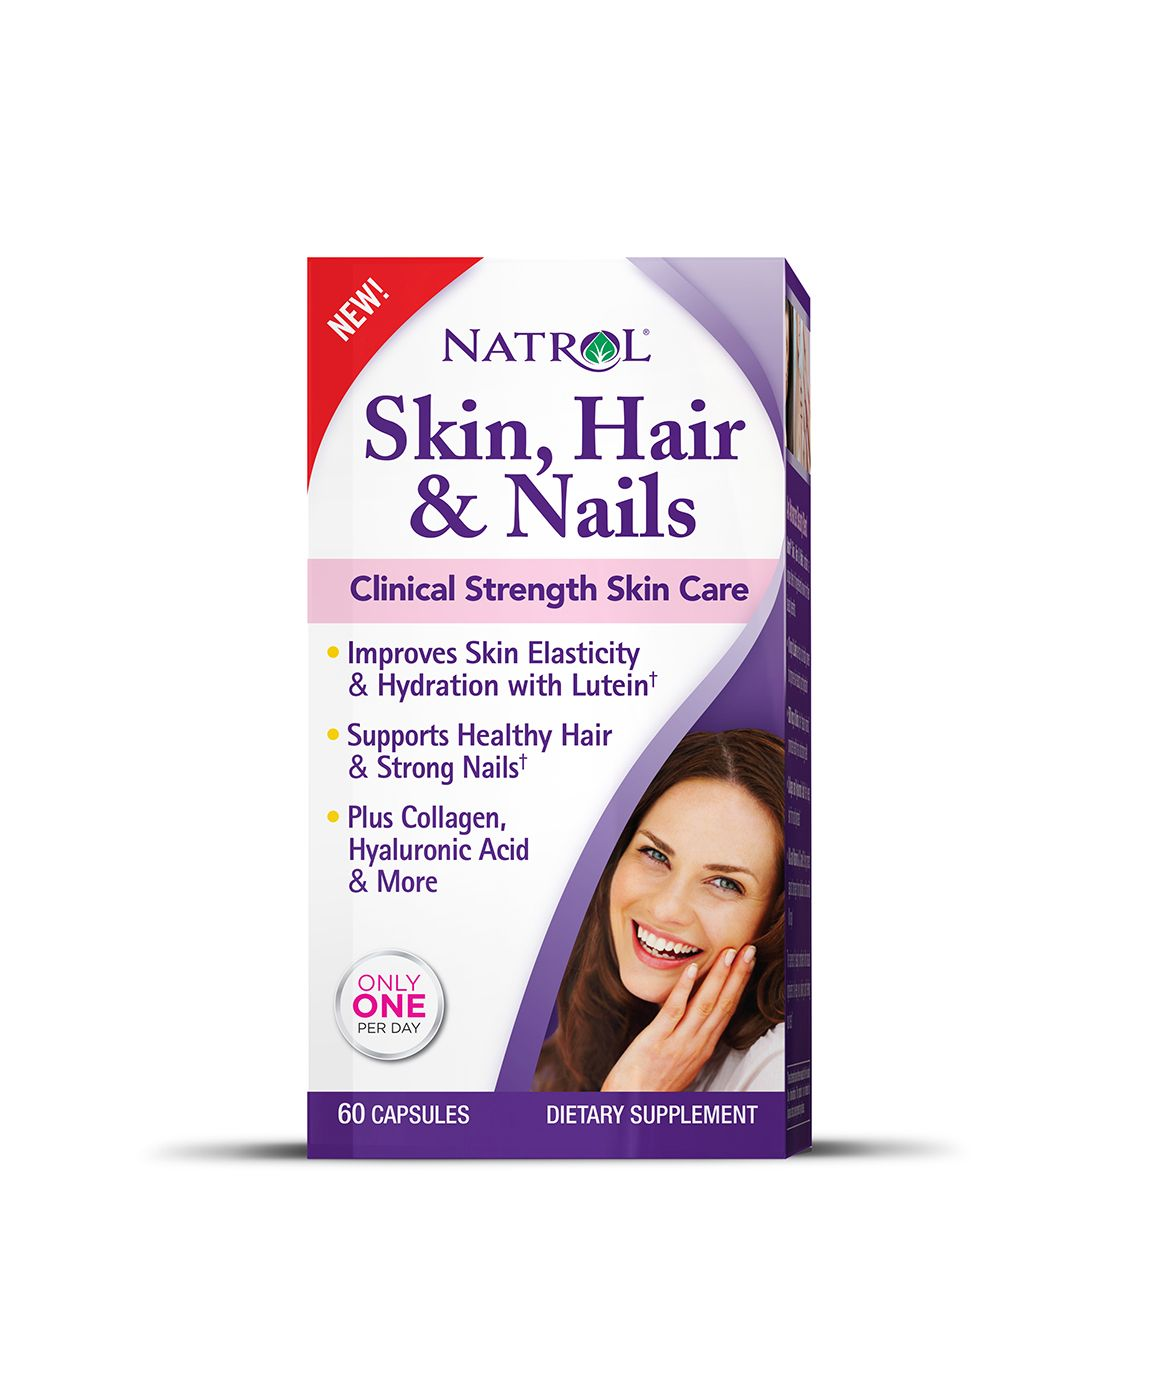 Skin, Hair & Nails - Clinical Strength Skin Care by Natrol LLC